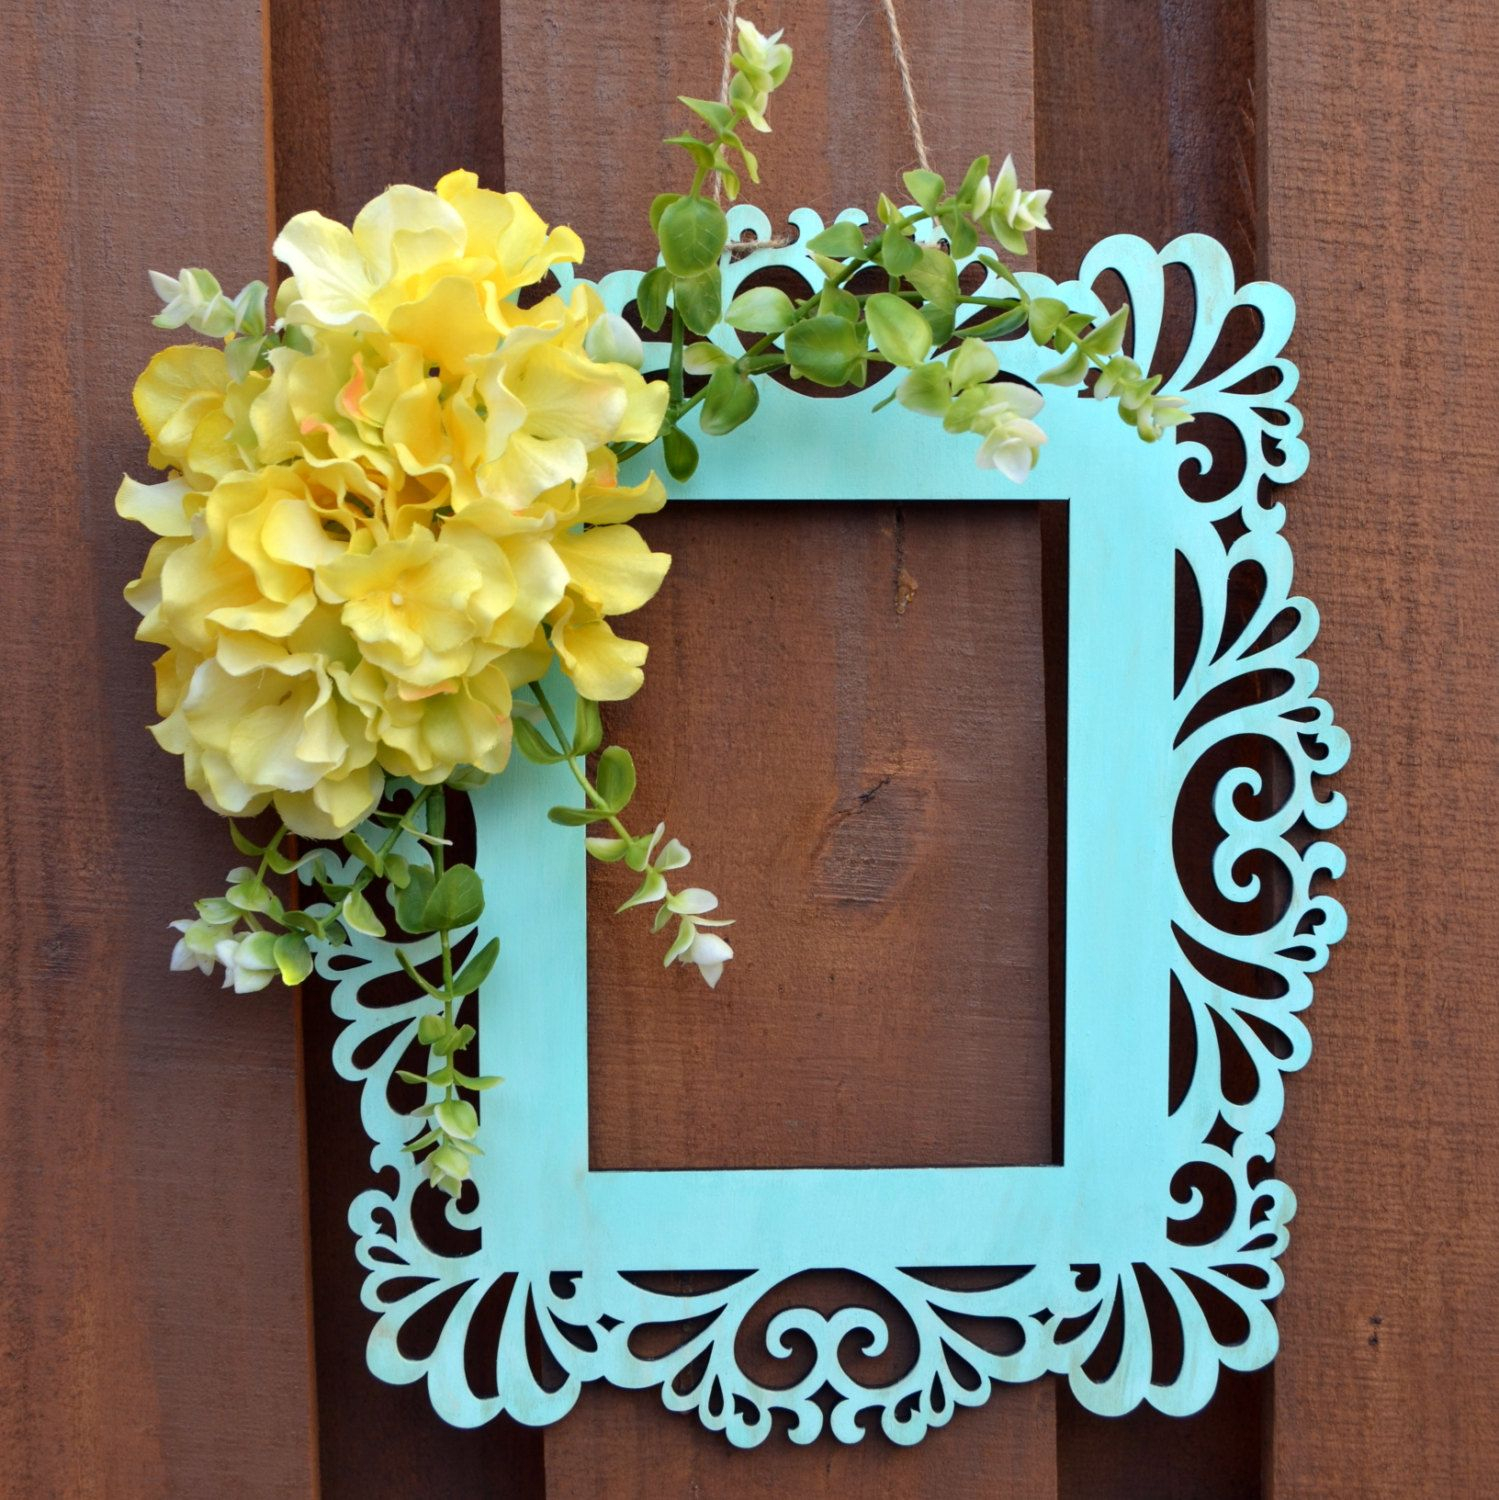 Spring Frame Wreath - Spring Door Hanger - Wall Decor with Floral Wreath Wood Framed Wall Decor (Image 27 of 30)